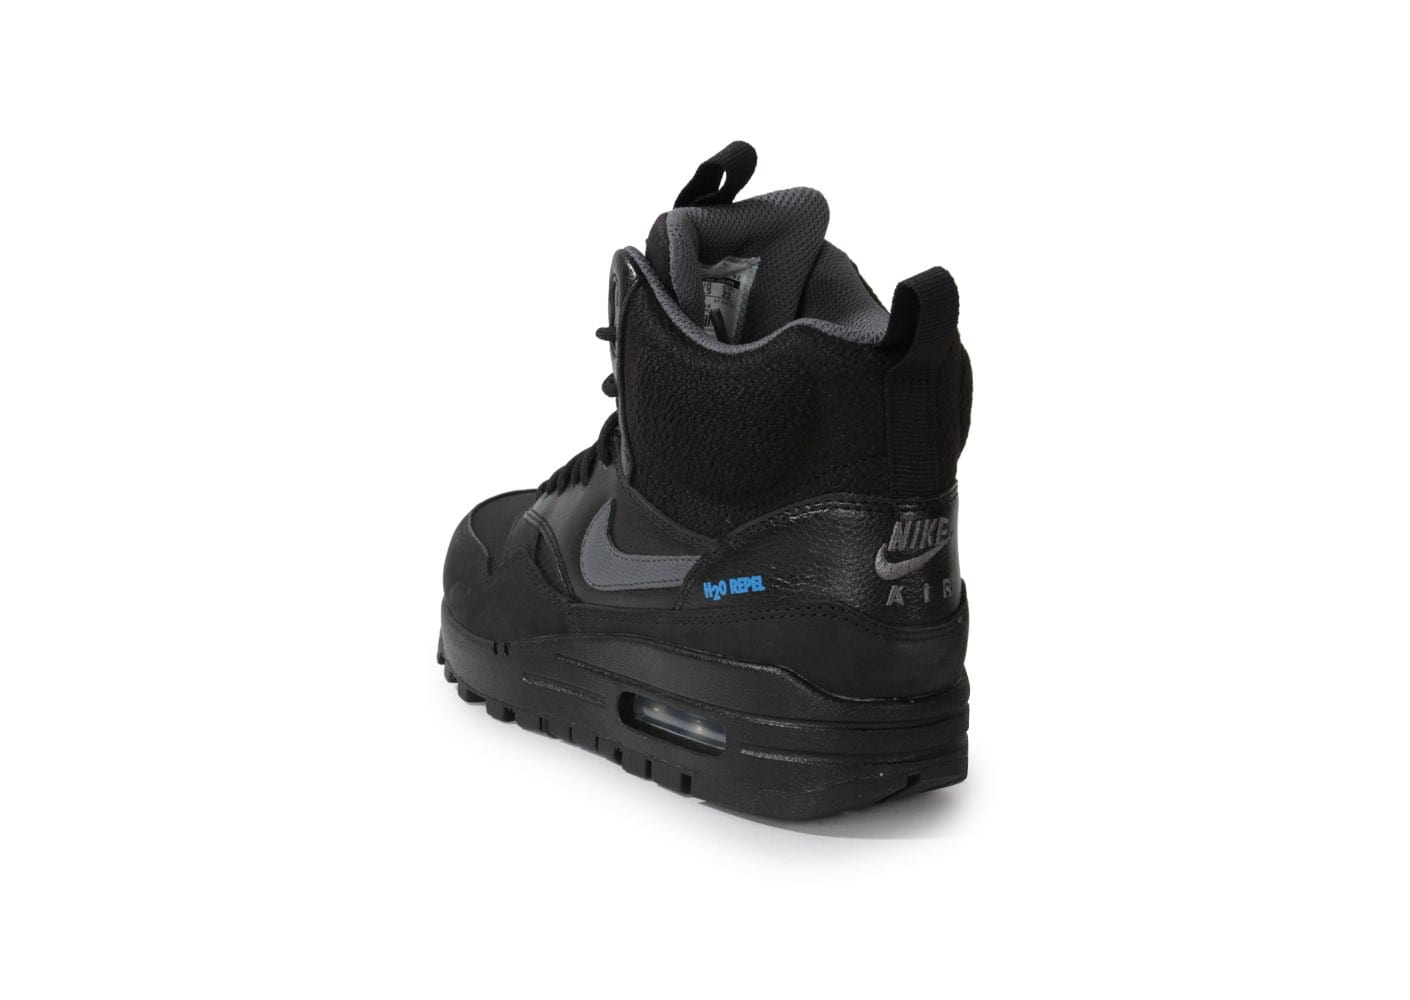 Nike Air Max 1 Mid Sneakerboot Noire Chaussures Chaussures